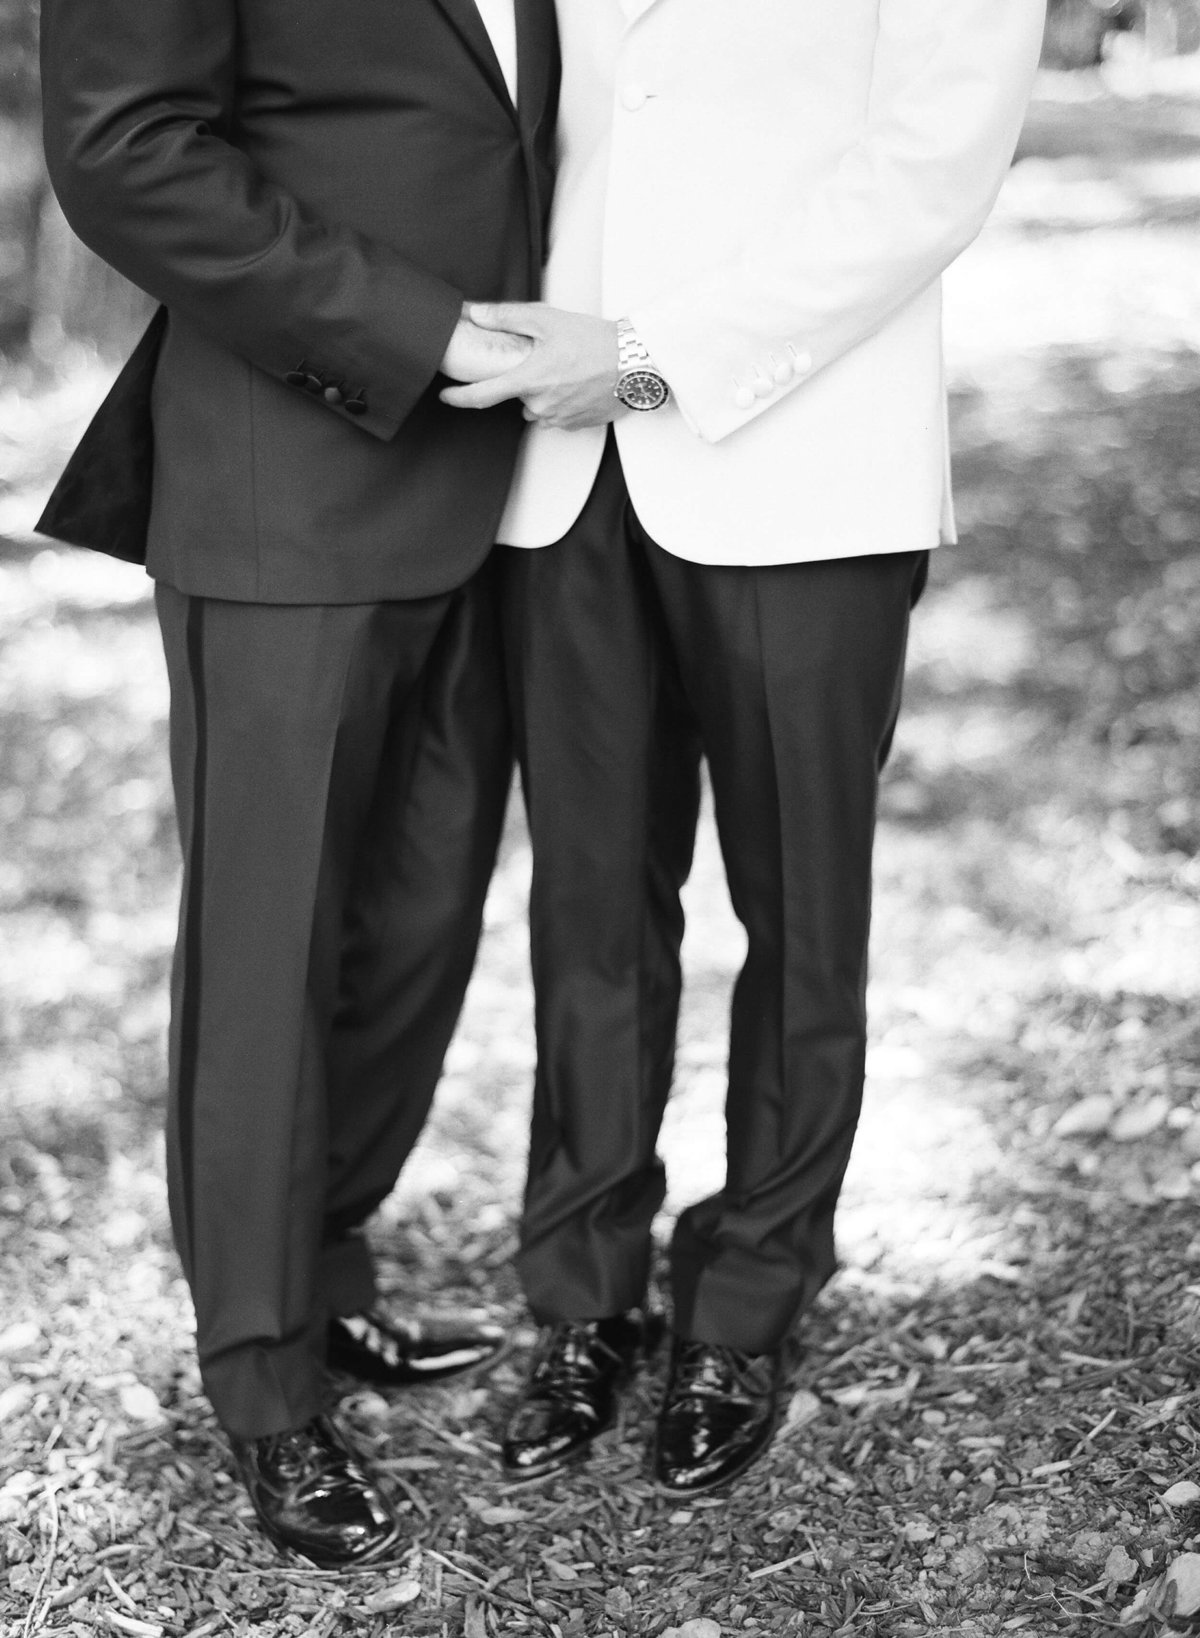 24-KTMerry-wedding-photography-samesex-portrait-blackandwhite